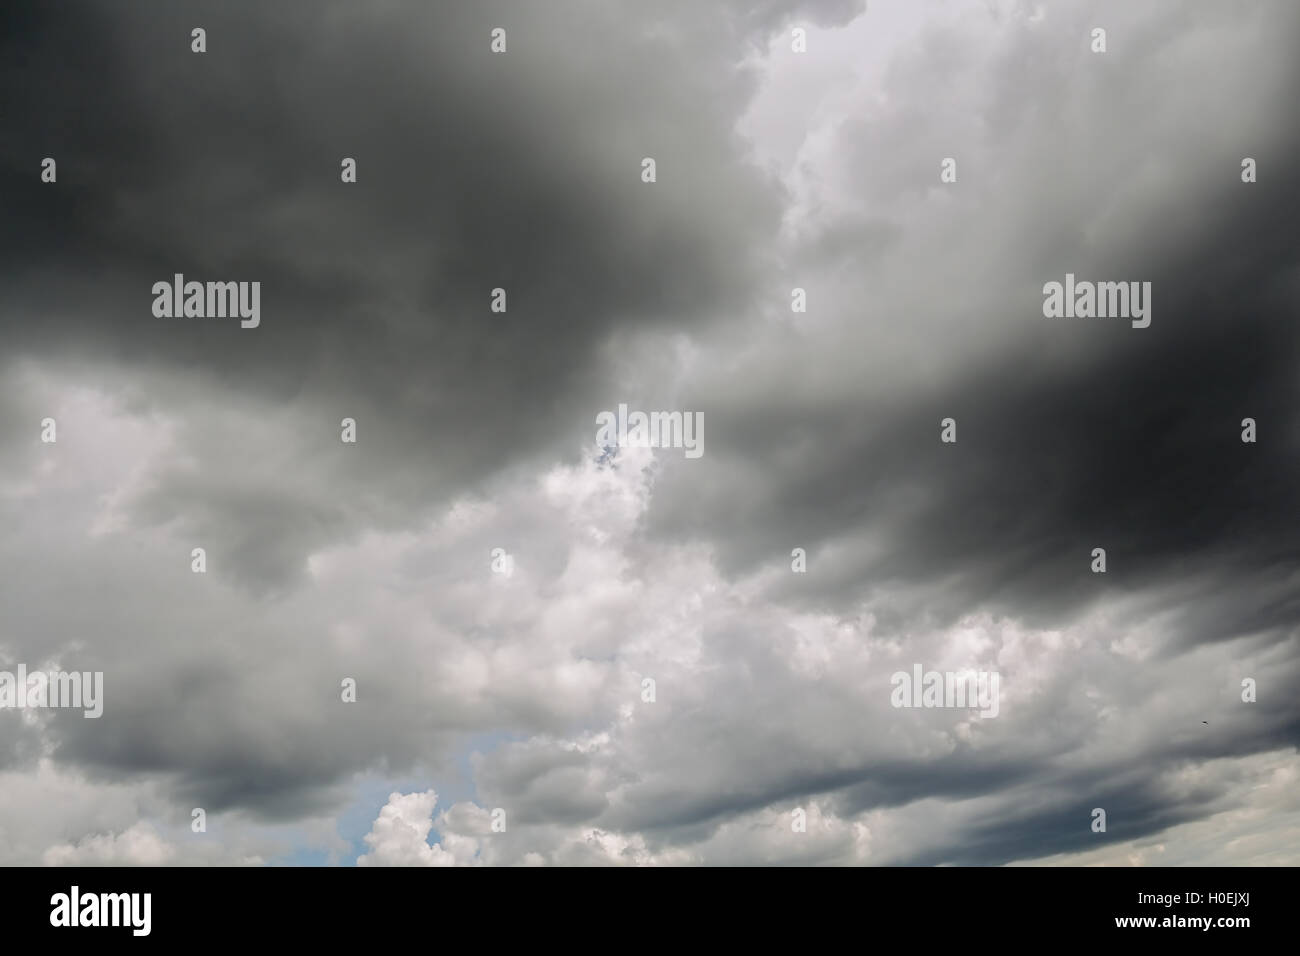 Storm clouds cloudy sky background with the adverse weather. - Stock Image